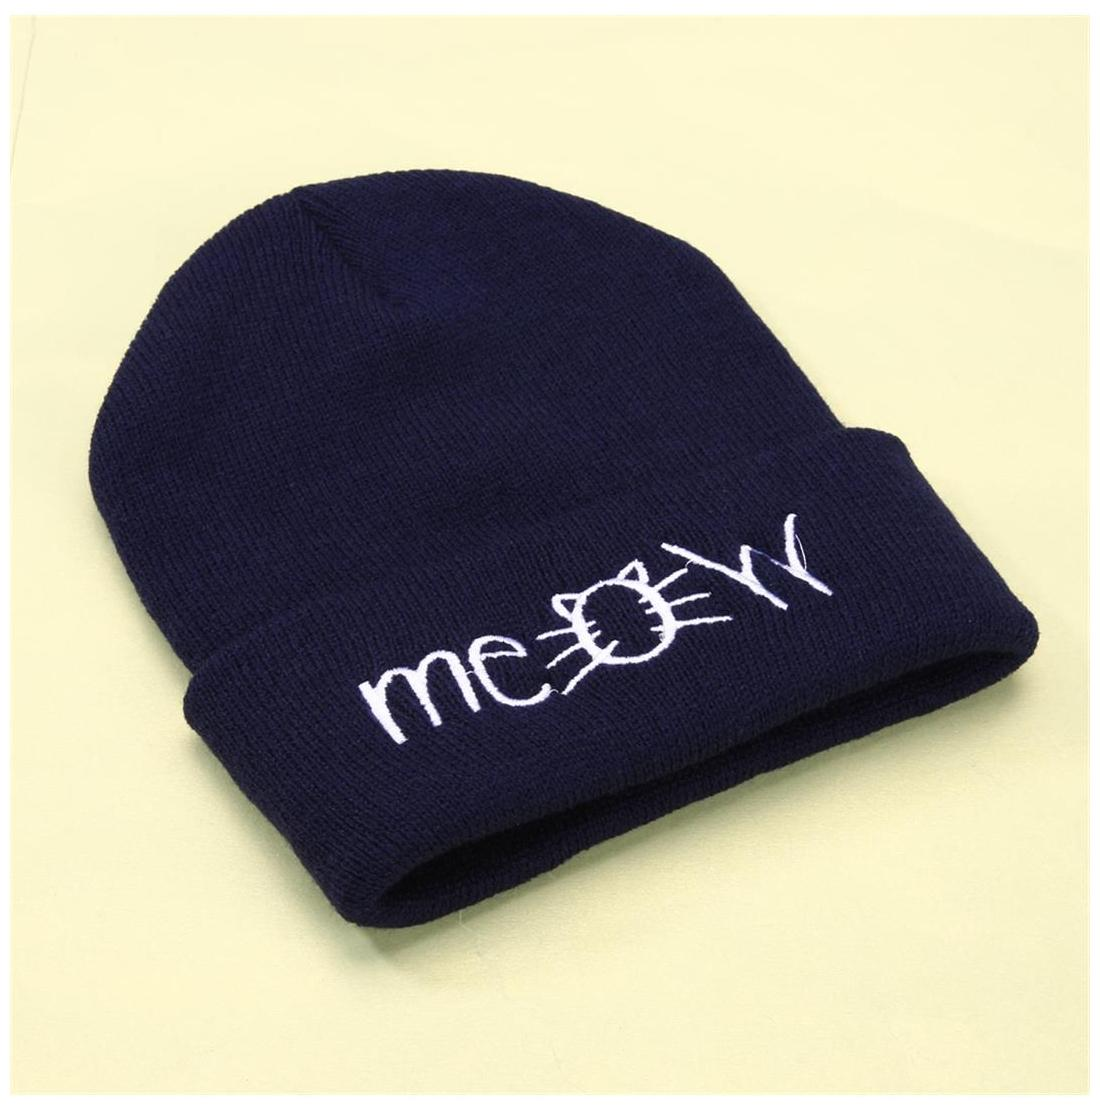 23fae26f4ff Buy MEOW Cap Winter Casual Hip Hop Knitted Wool Skullies Beanie Hat (Navy)  Online at Low Prices in India - Paytmmall.com